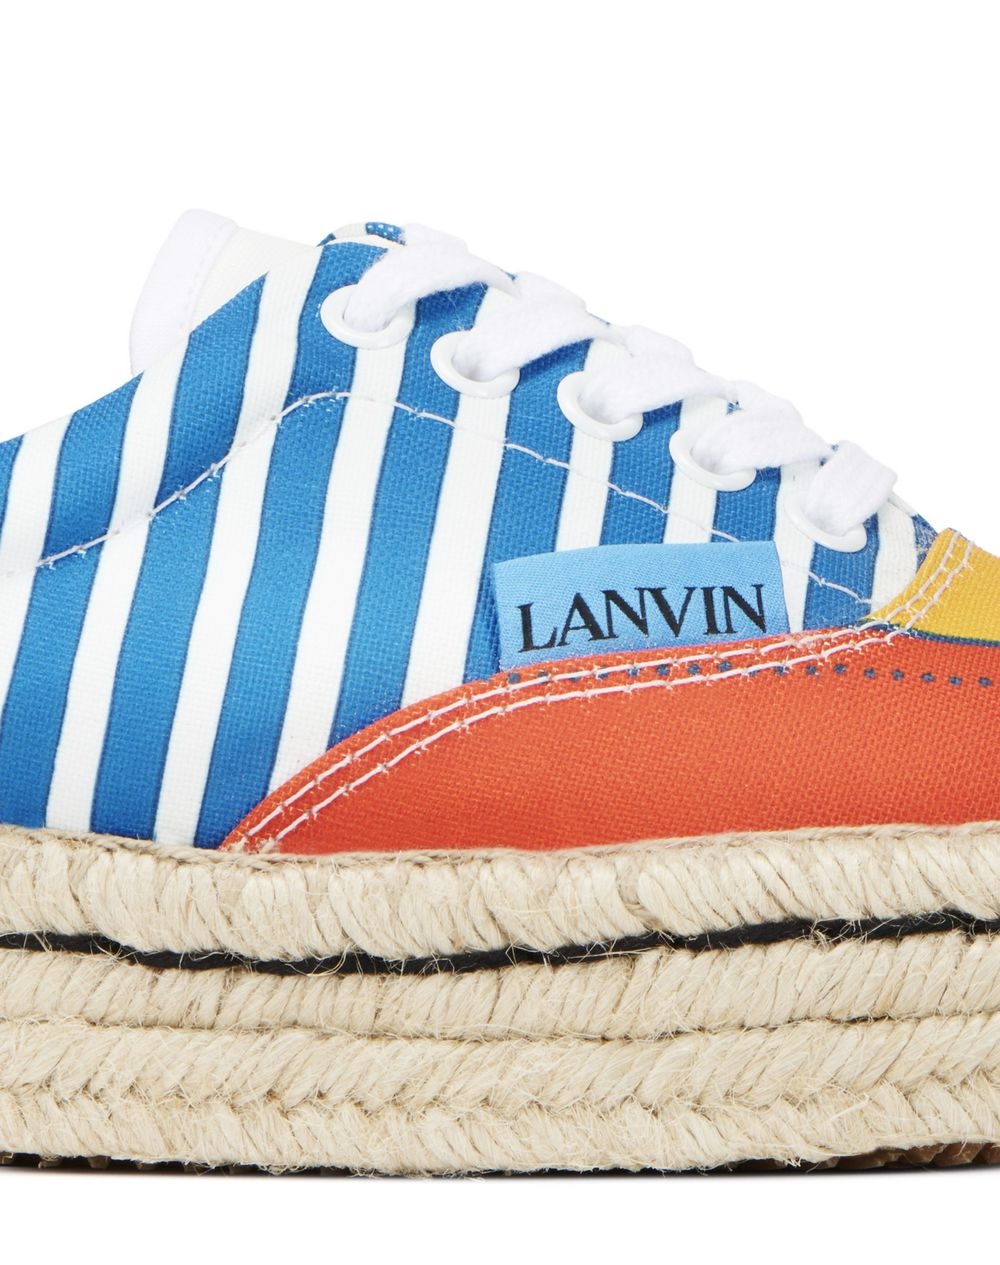 ESPADRILLE SNEAKER IN COTTON CANVAS - Lanvin